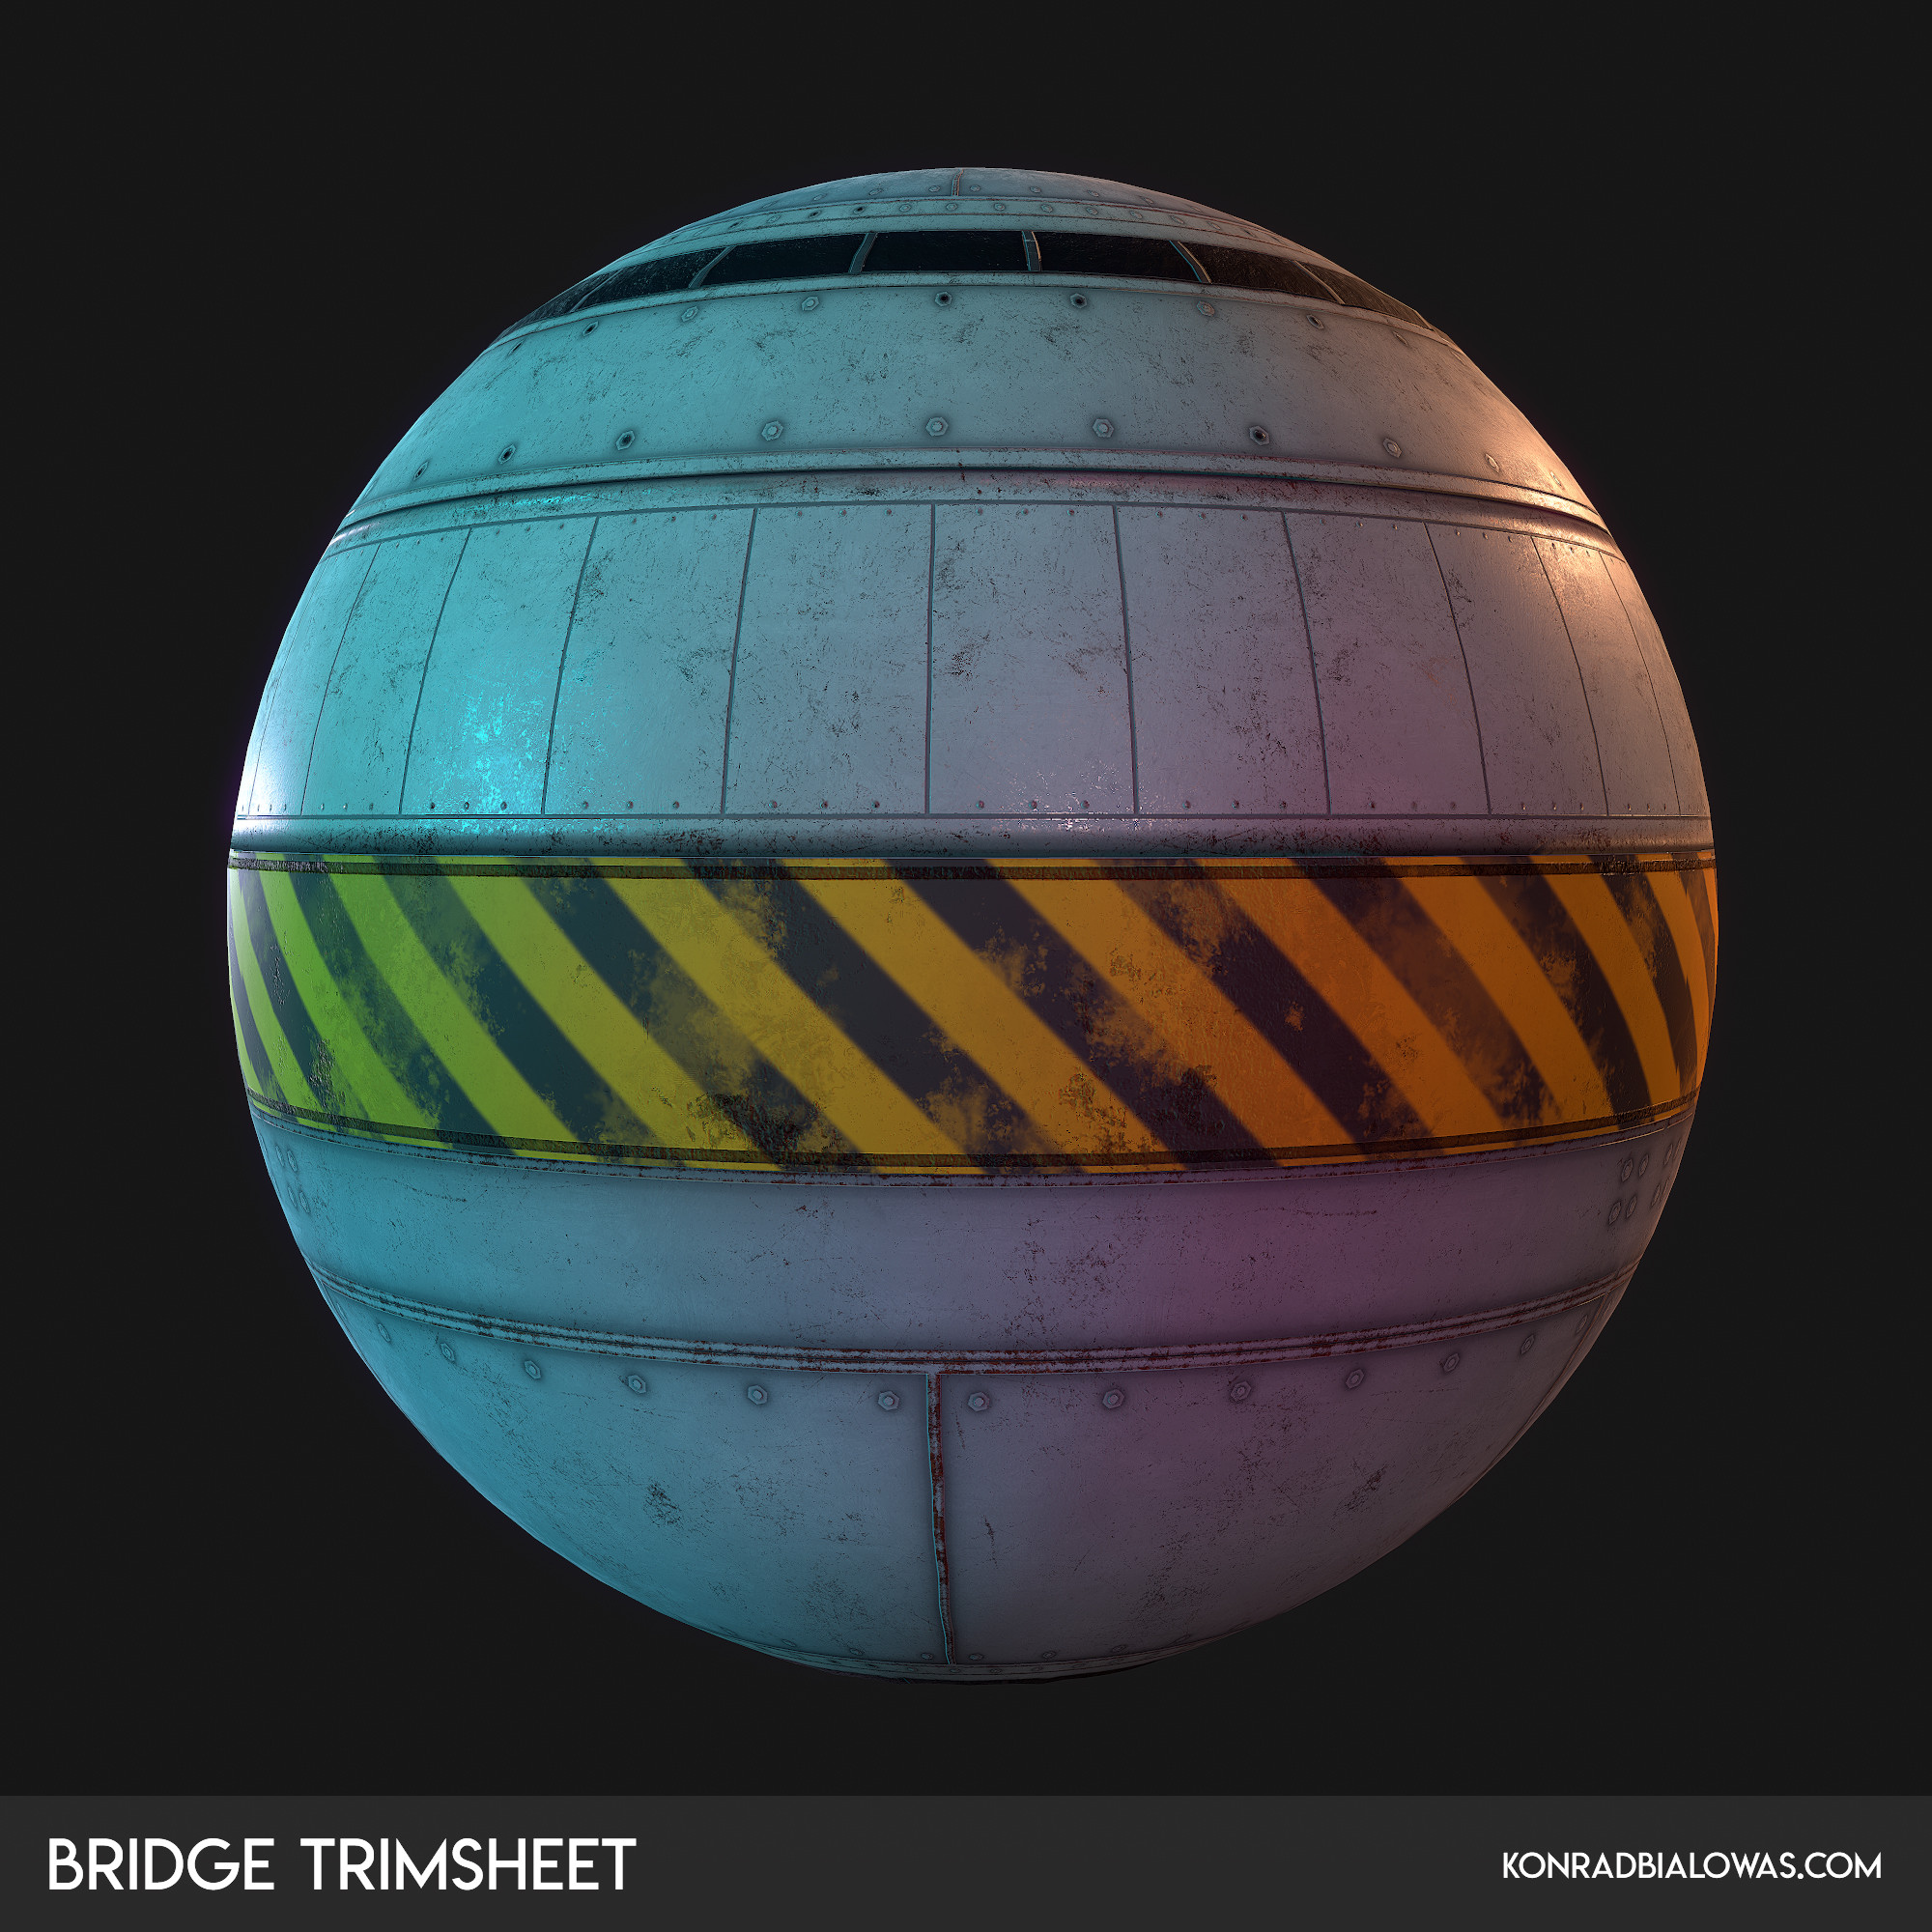 One of the trimsheets used created in Maya and Substance Painter